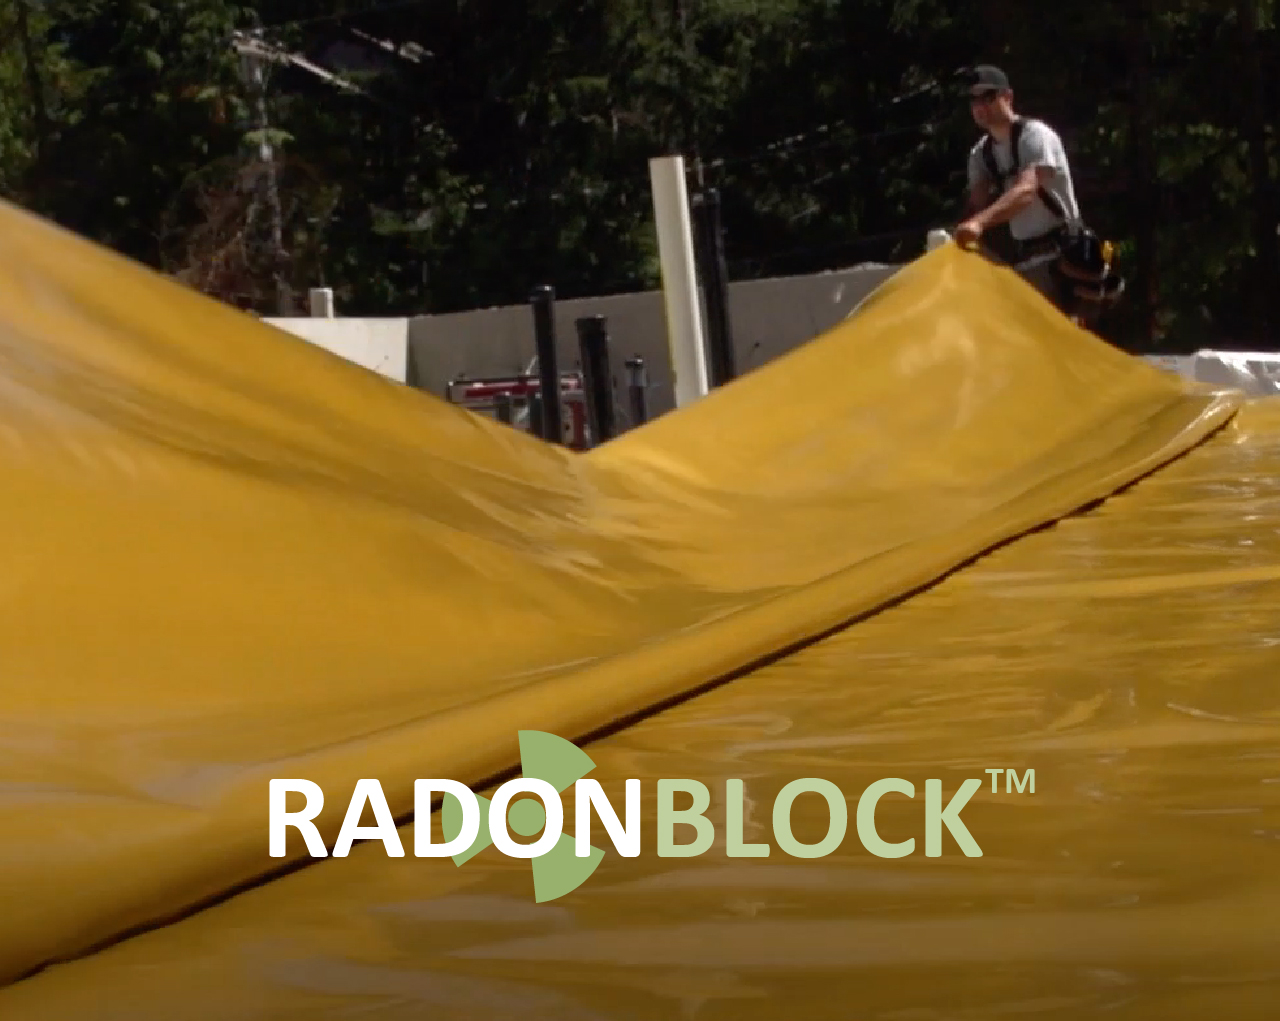 Unfolding sheet of Radon Block.